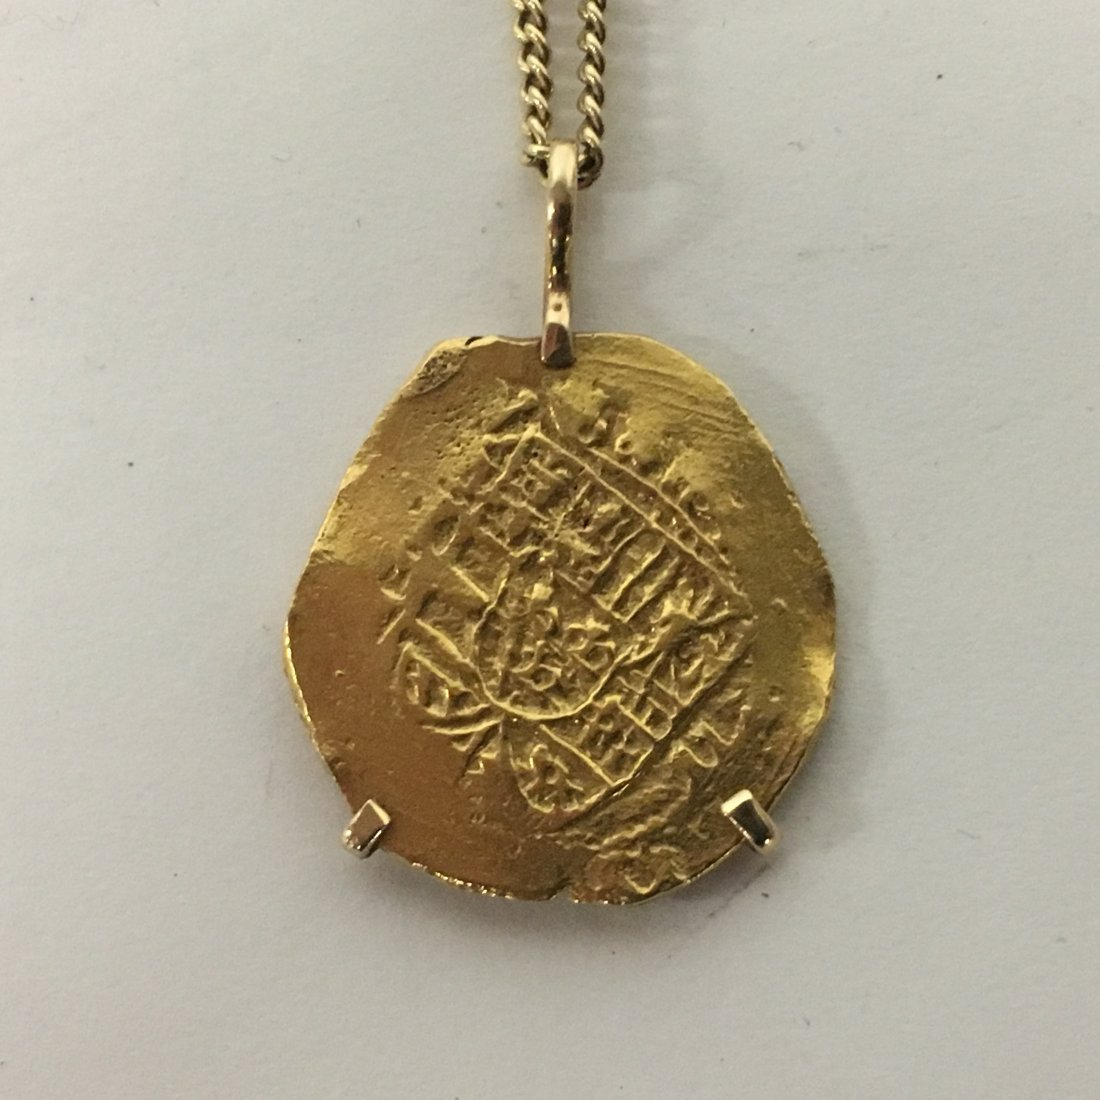 22k gold coin pendant necklace